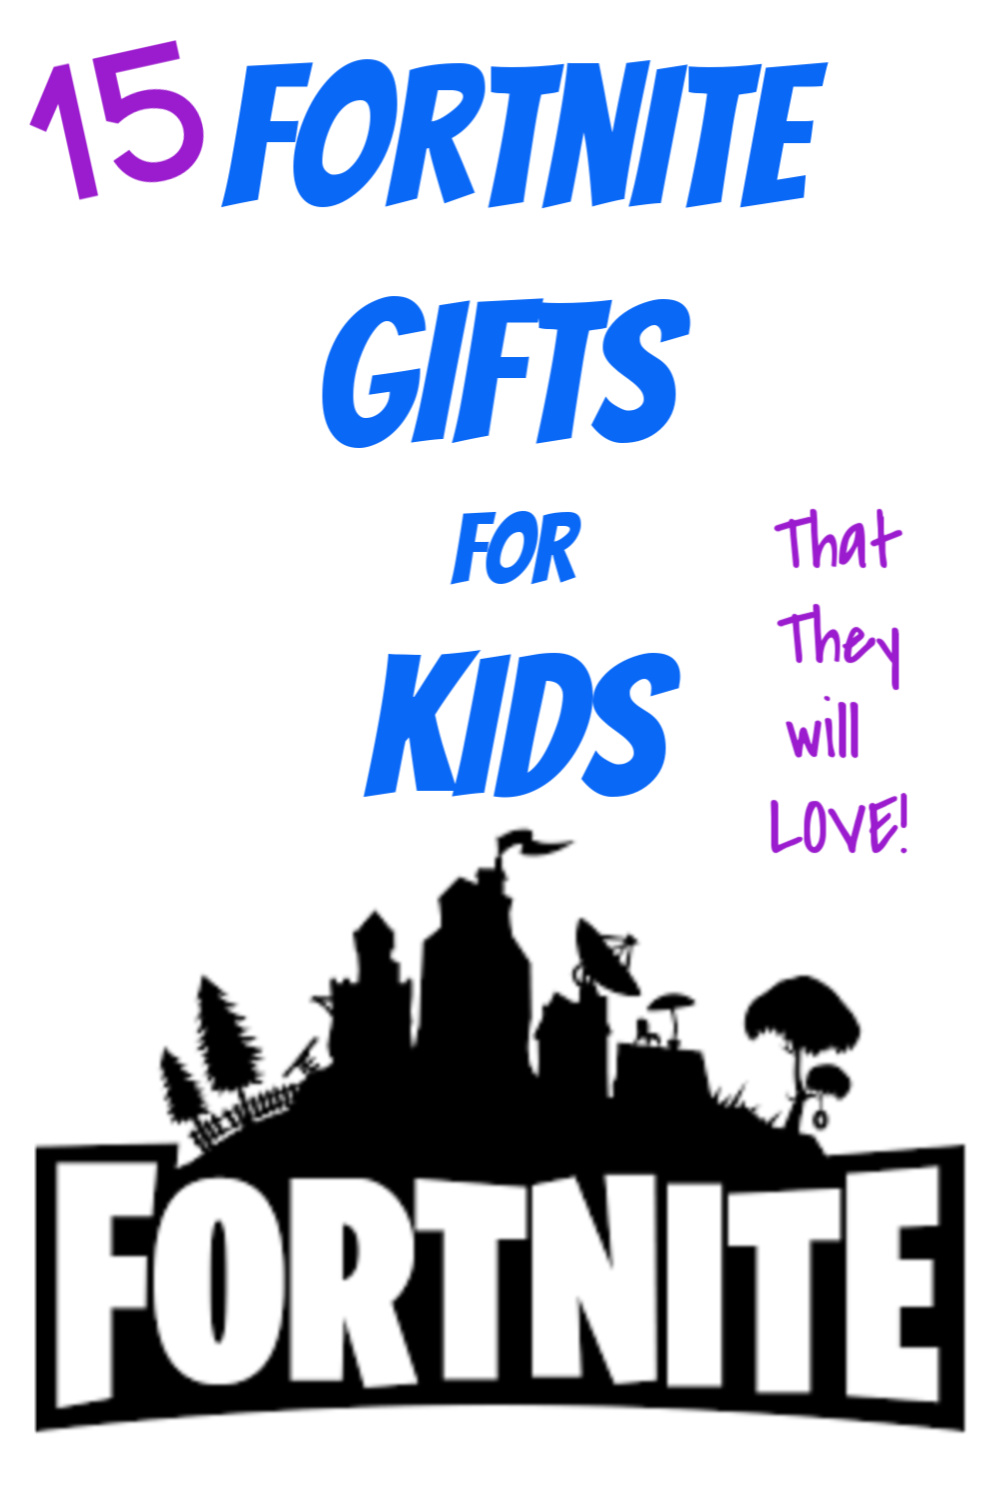 Fortnite Gifts for Kids